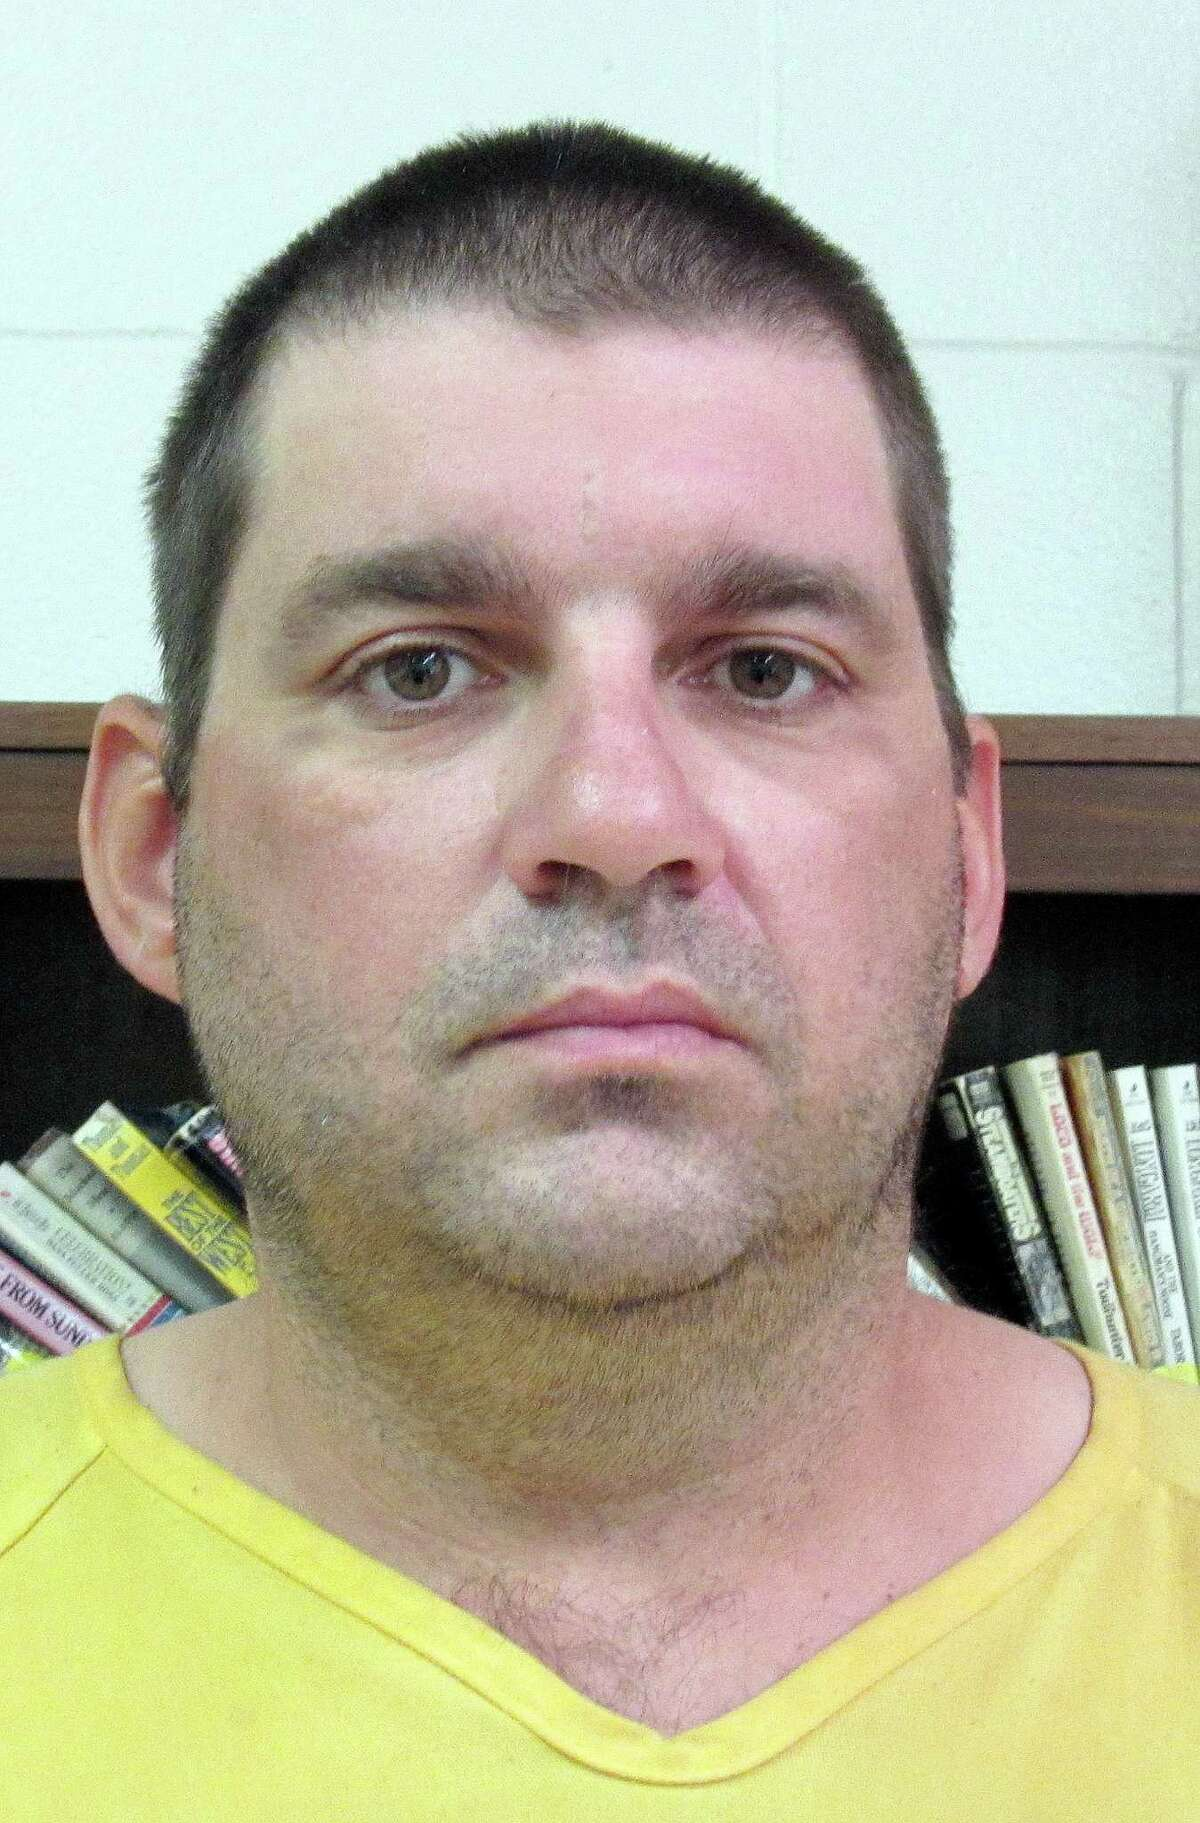 CAPTION: TONY FLINT HAS BEEN CHARGED WITH FIRST-DEGREE MURDER IN THE DEATH OF HIS FRIEND GLENN FELTS PHOTO COURTESY OF BIG BEND SENTINEL